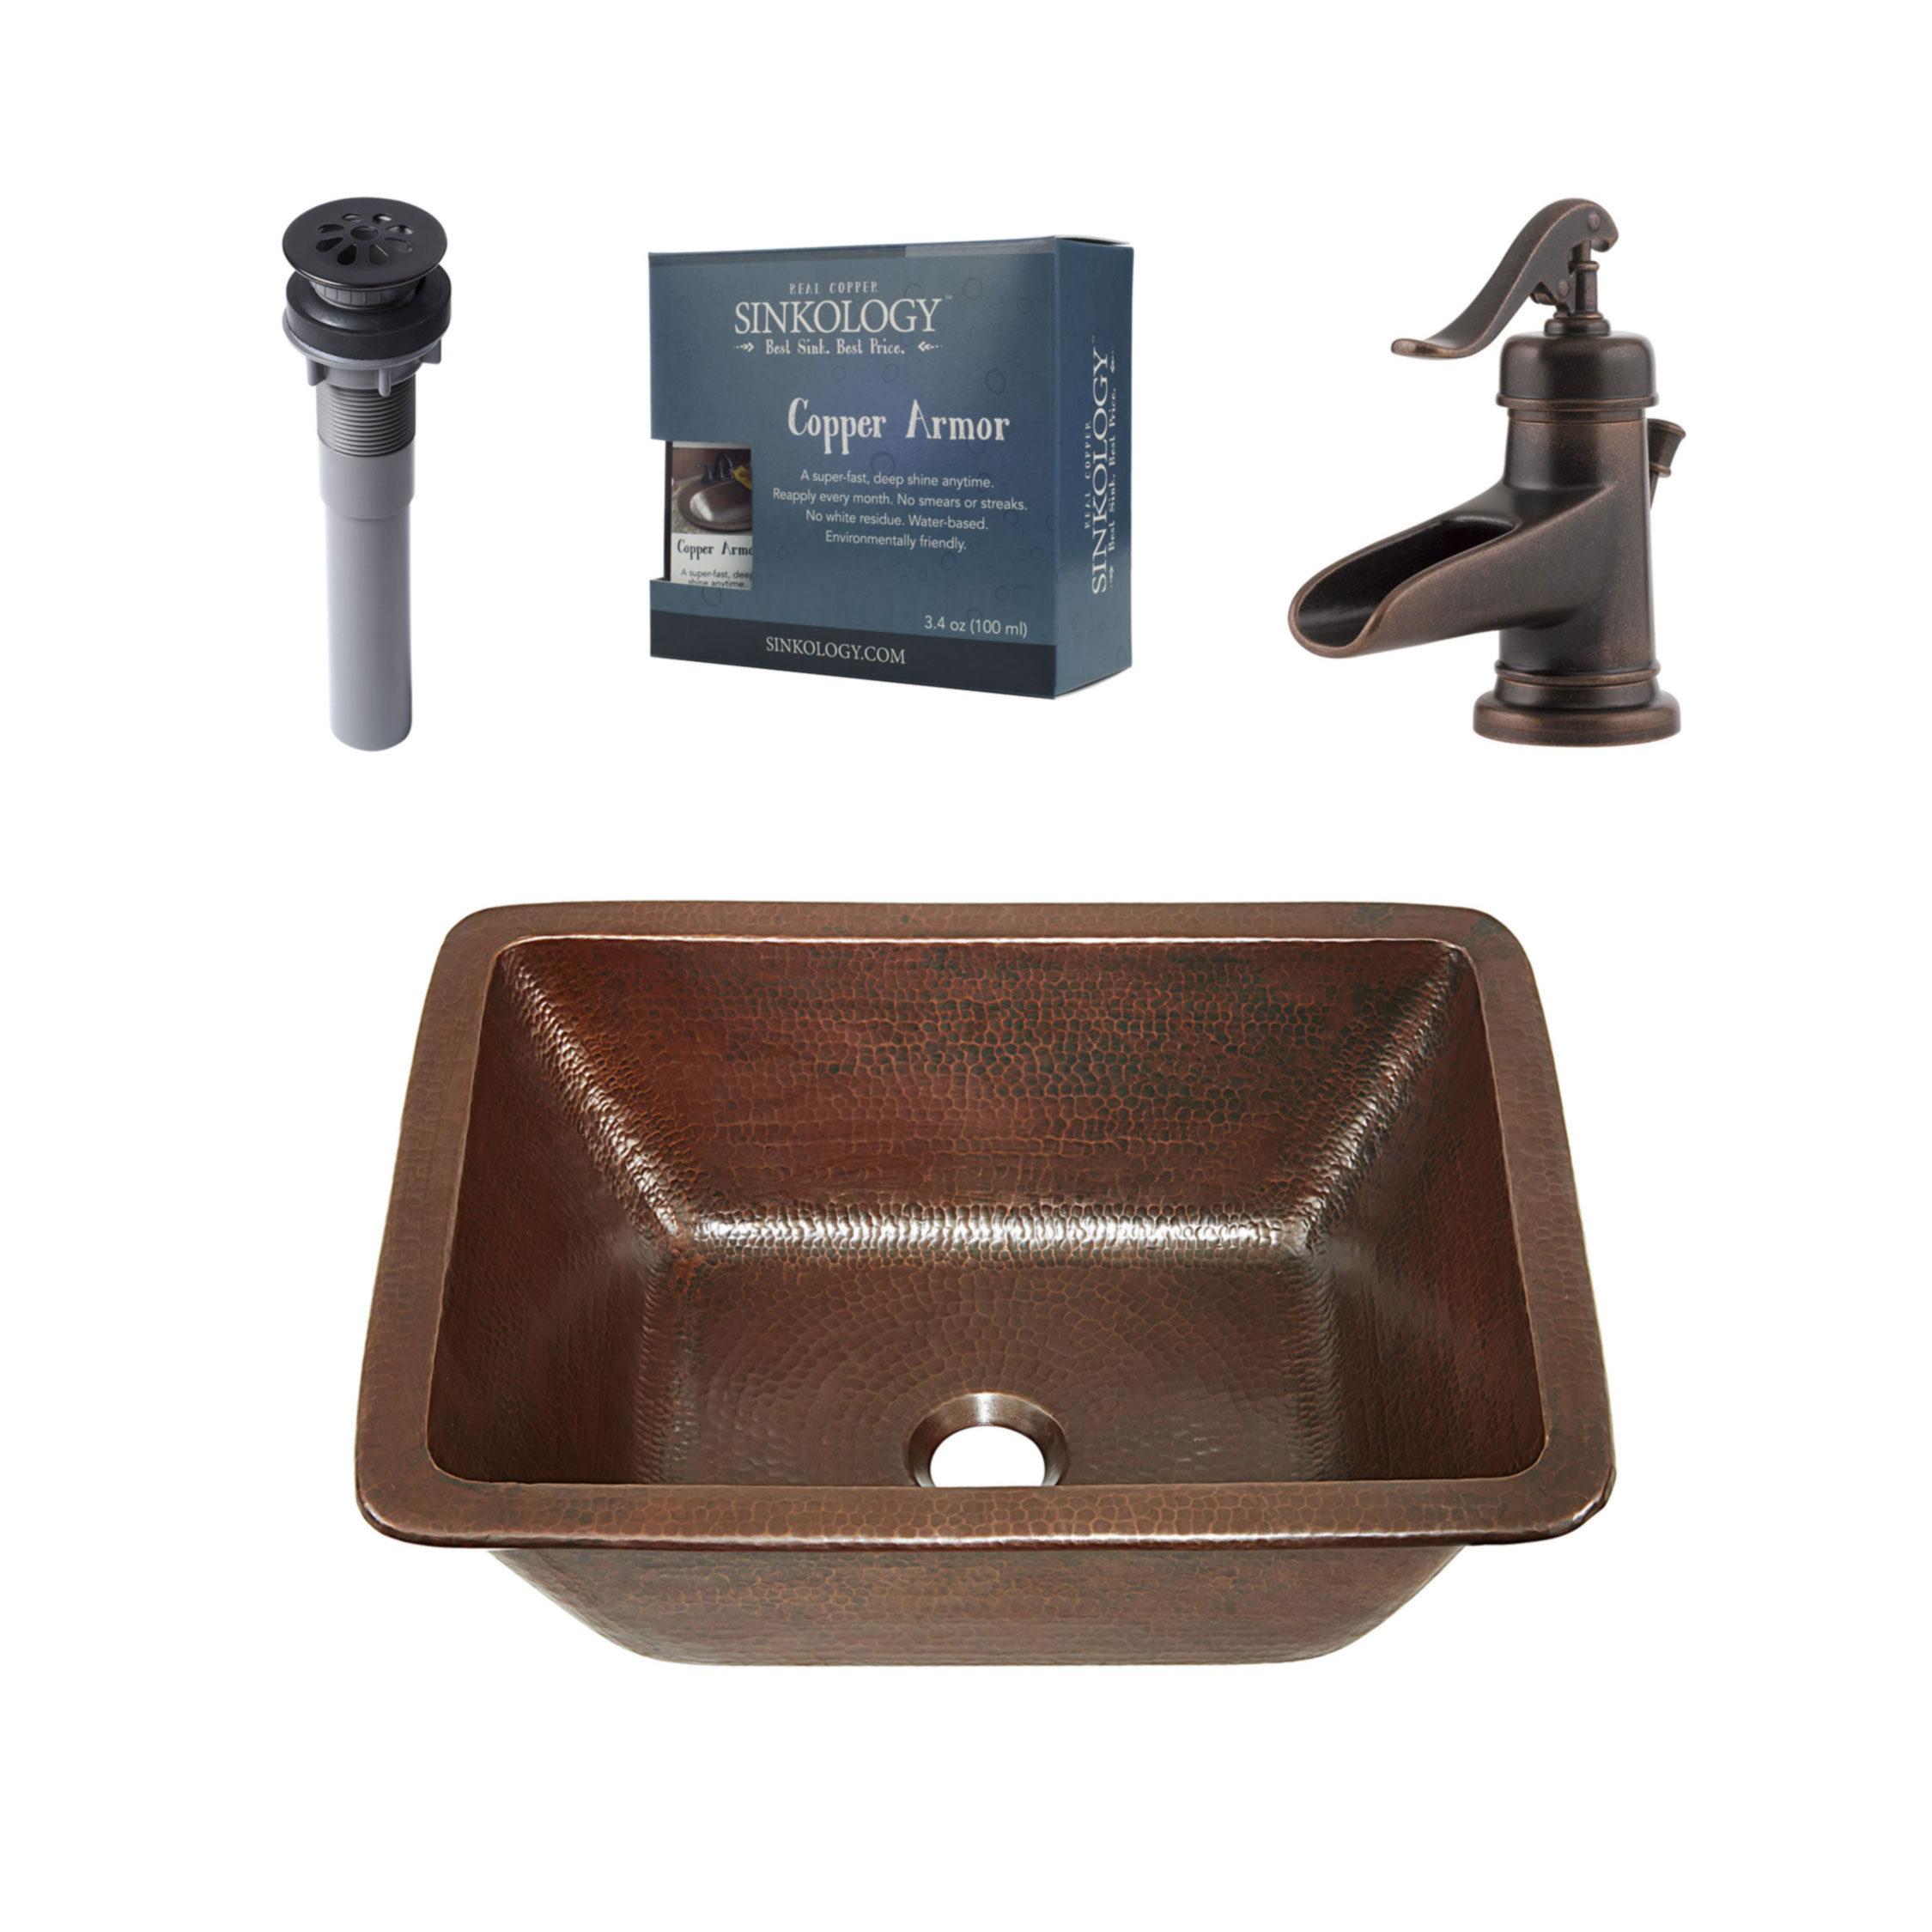 hawking all in one sink faucet design kit sinkology